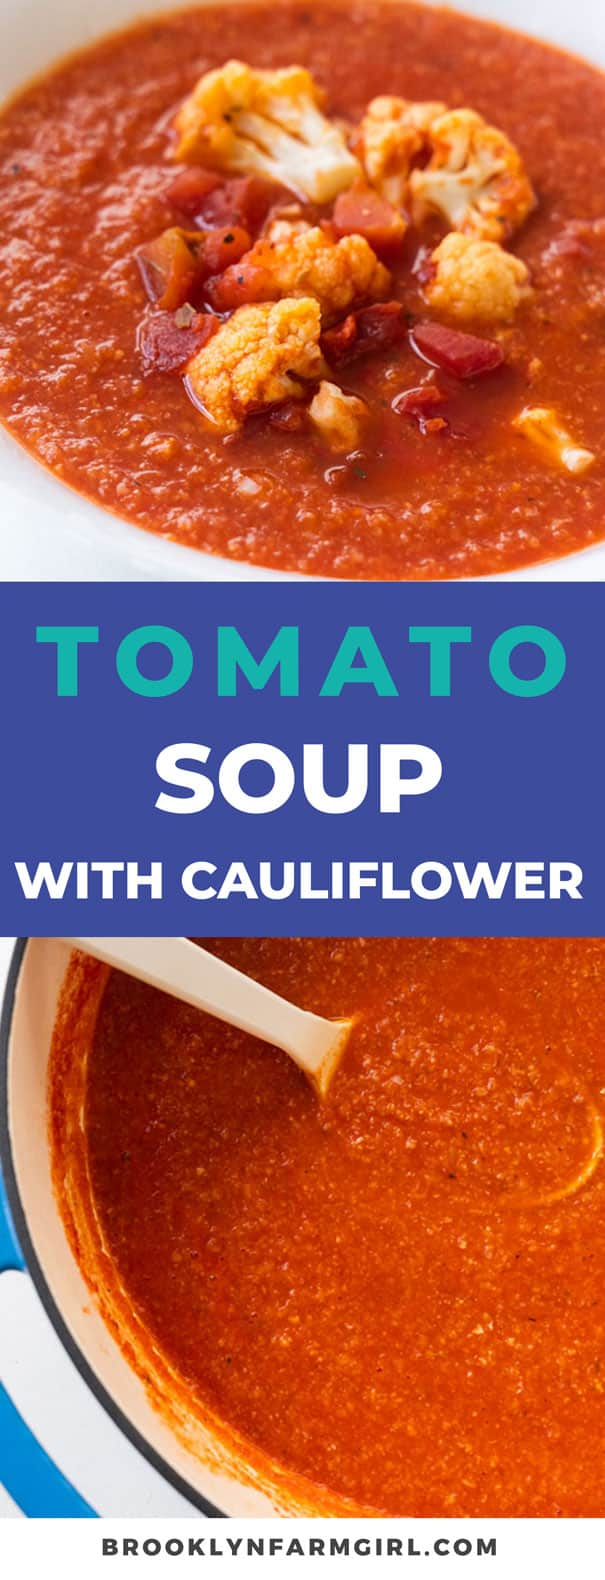 Easy to make creamy tomato soup with cauliflower recipe, ready in 35 minutes. This homemade soup uses cans of crushed tomatoes and a whole head of cauliflower to make it a healthy dinner the entire family will love. No milk needed and only 177 calories a serving.